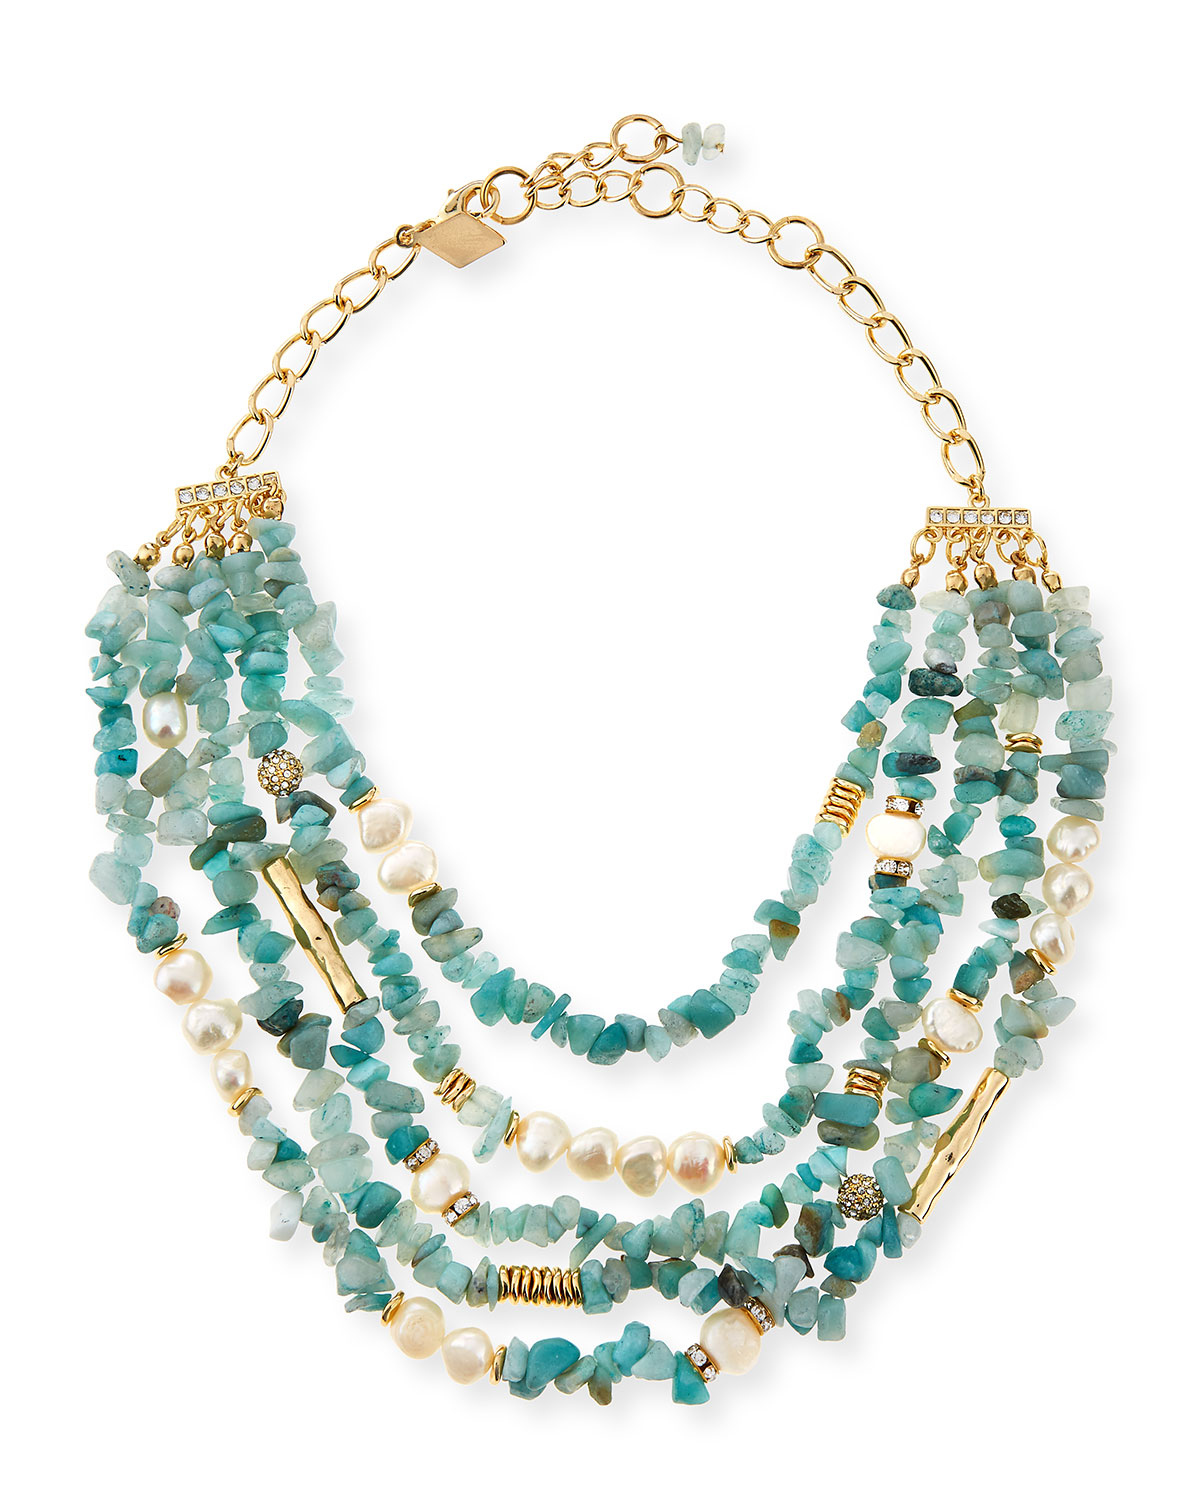 Lyst - Sequin Multi-strand Agate & Pearl Necklace in Blue